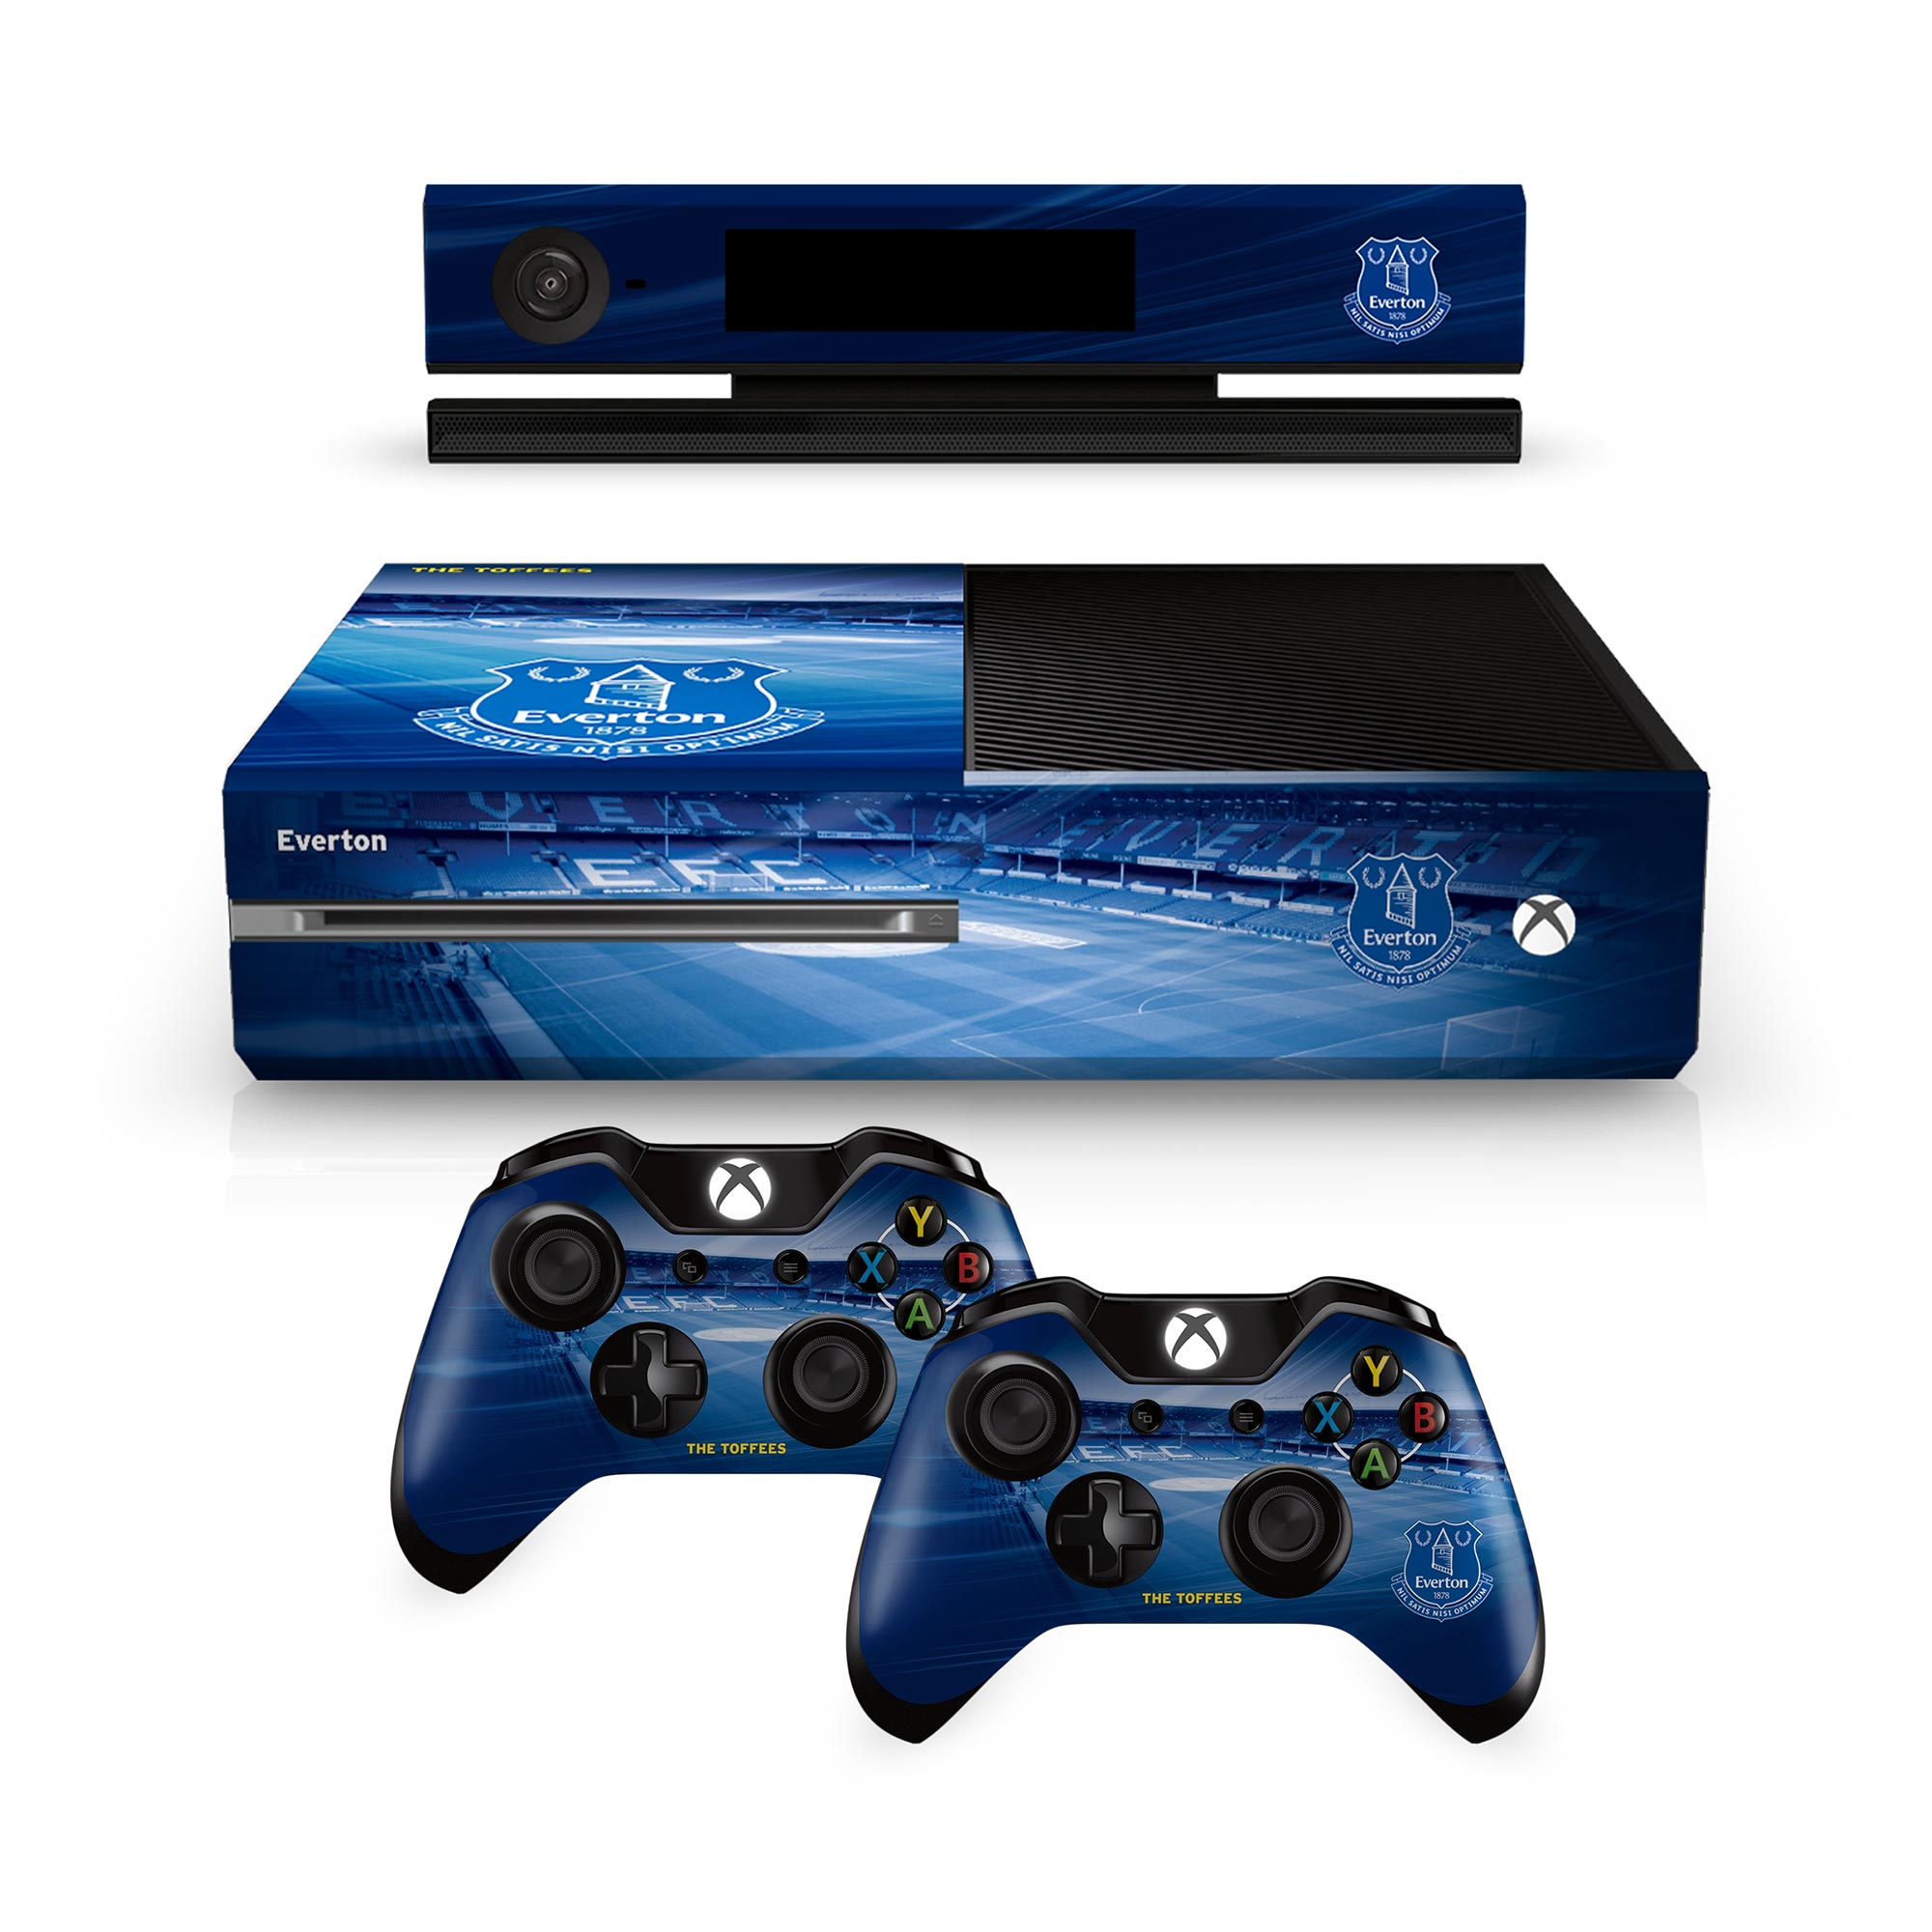 Everton Xbox One Controller and Console Skin Set